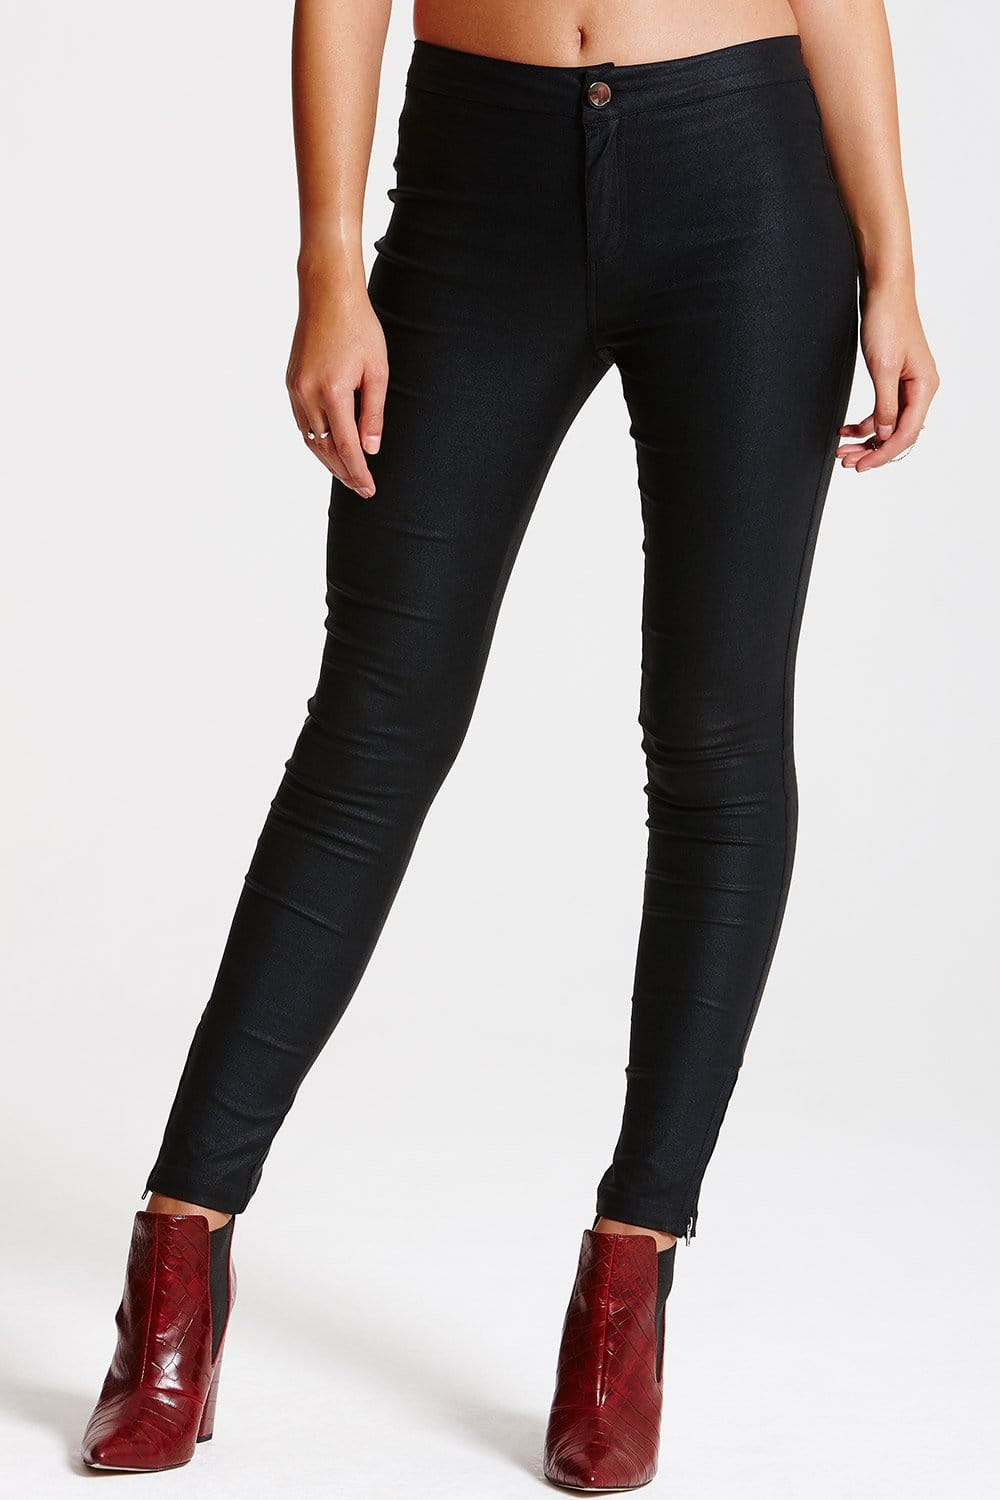 Outlet Girls On Film Black Leather Look Jeans - Outlet Girls On ...